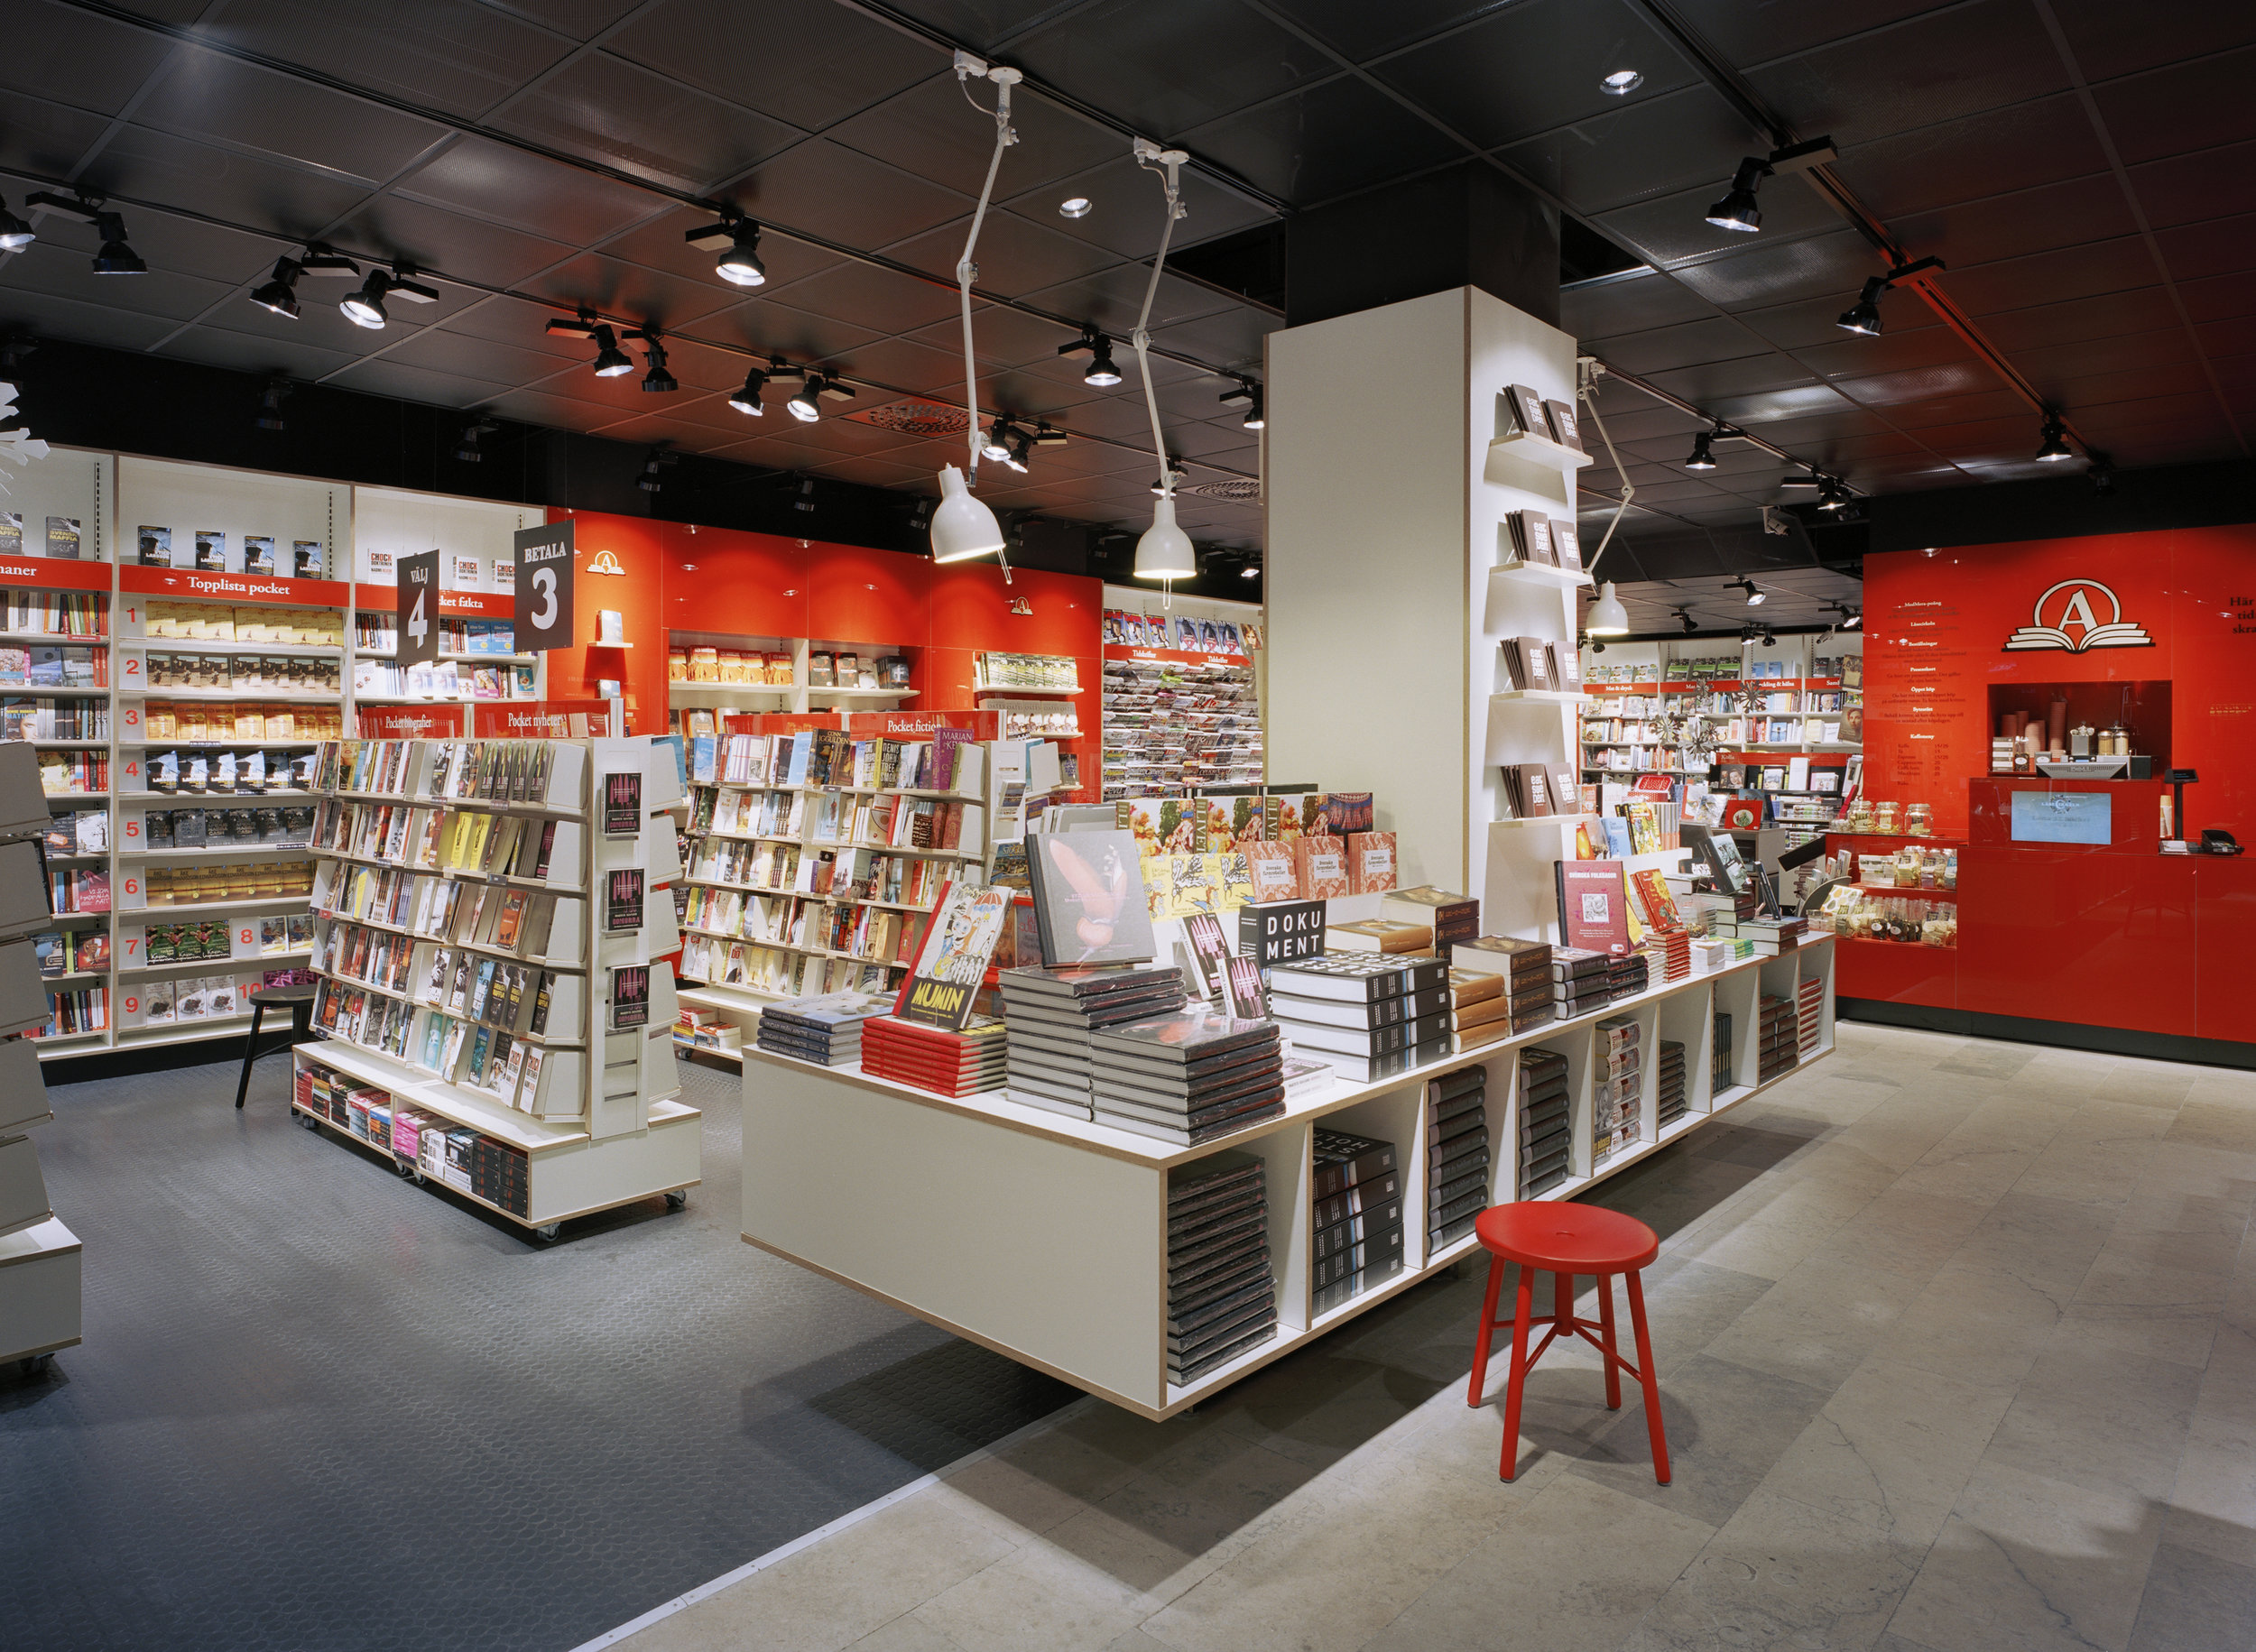 Akademibokhandeln Etc  / Assignment at BLINK / Projects: Retail concept / Role in projects: Creative direction and implementation  Photo by BLINK